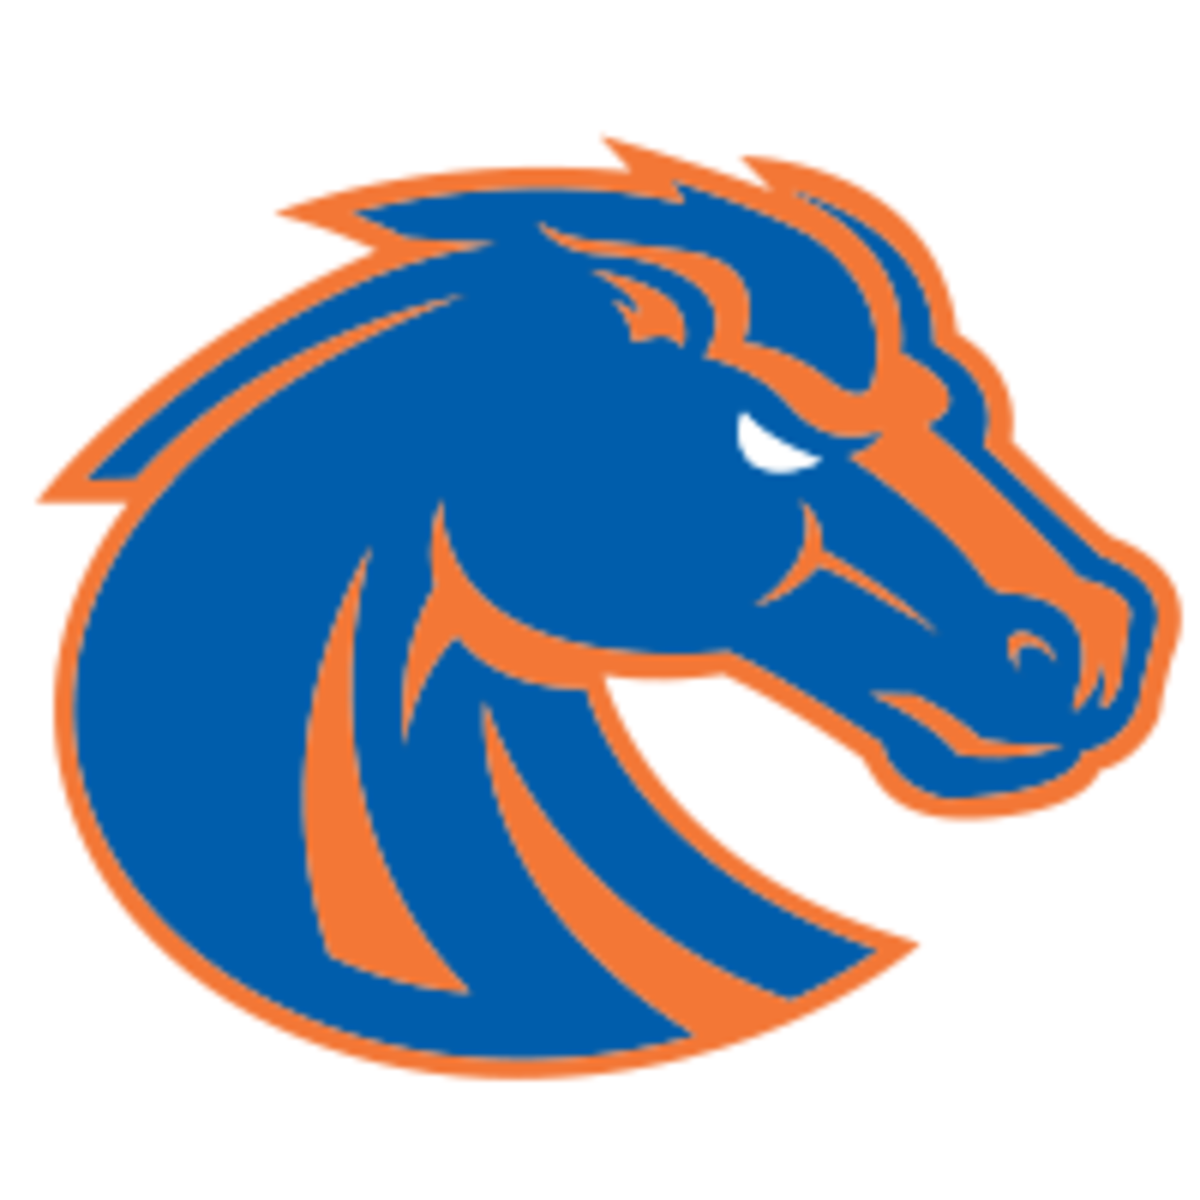 College Football Top 25 Rankings: Boise State